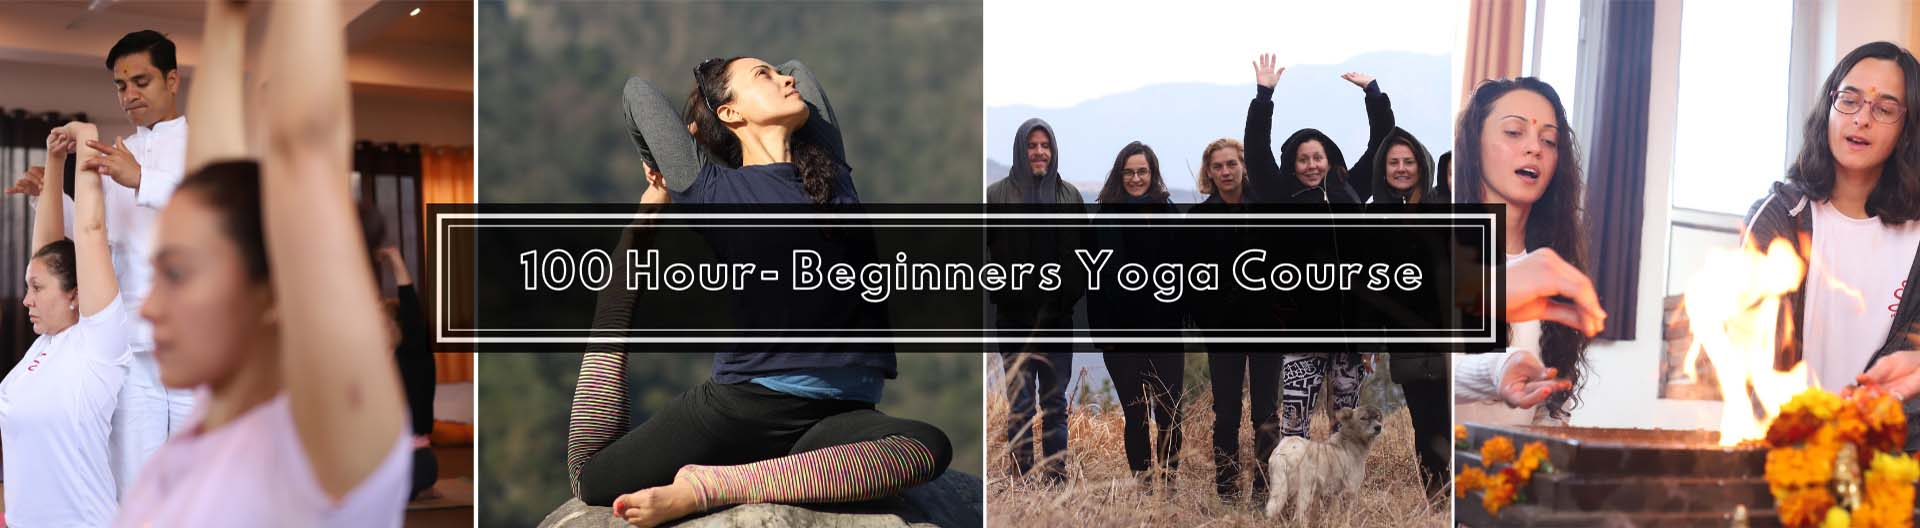 100-hours-beginner-yoga-course-india